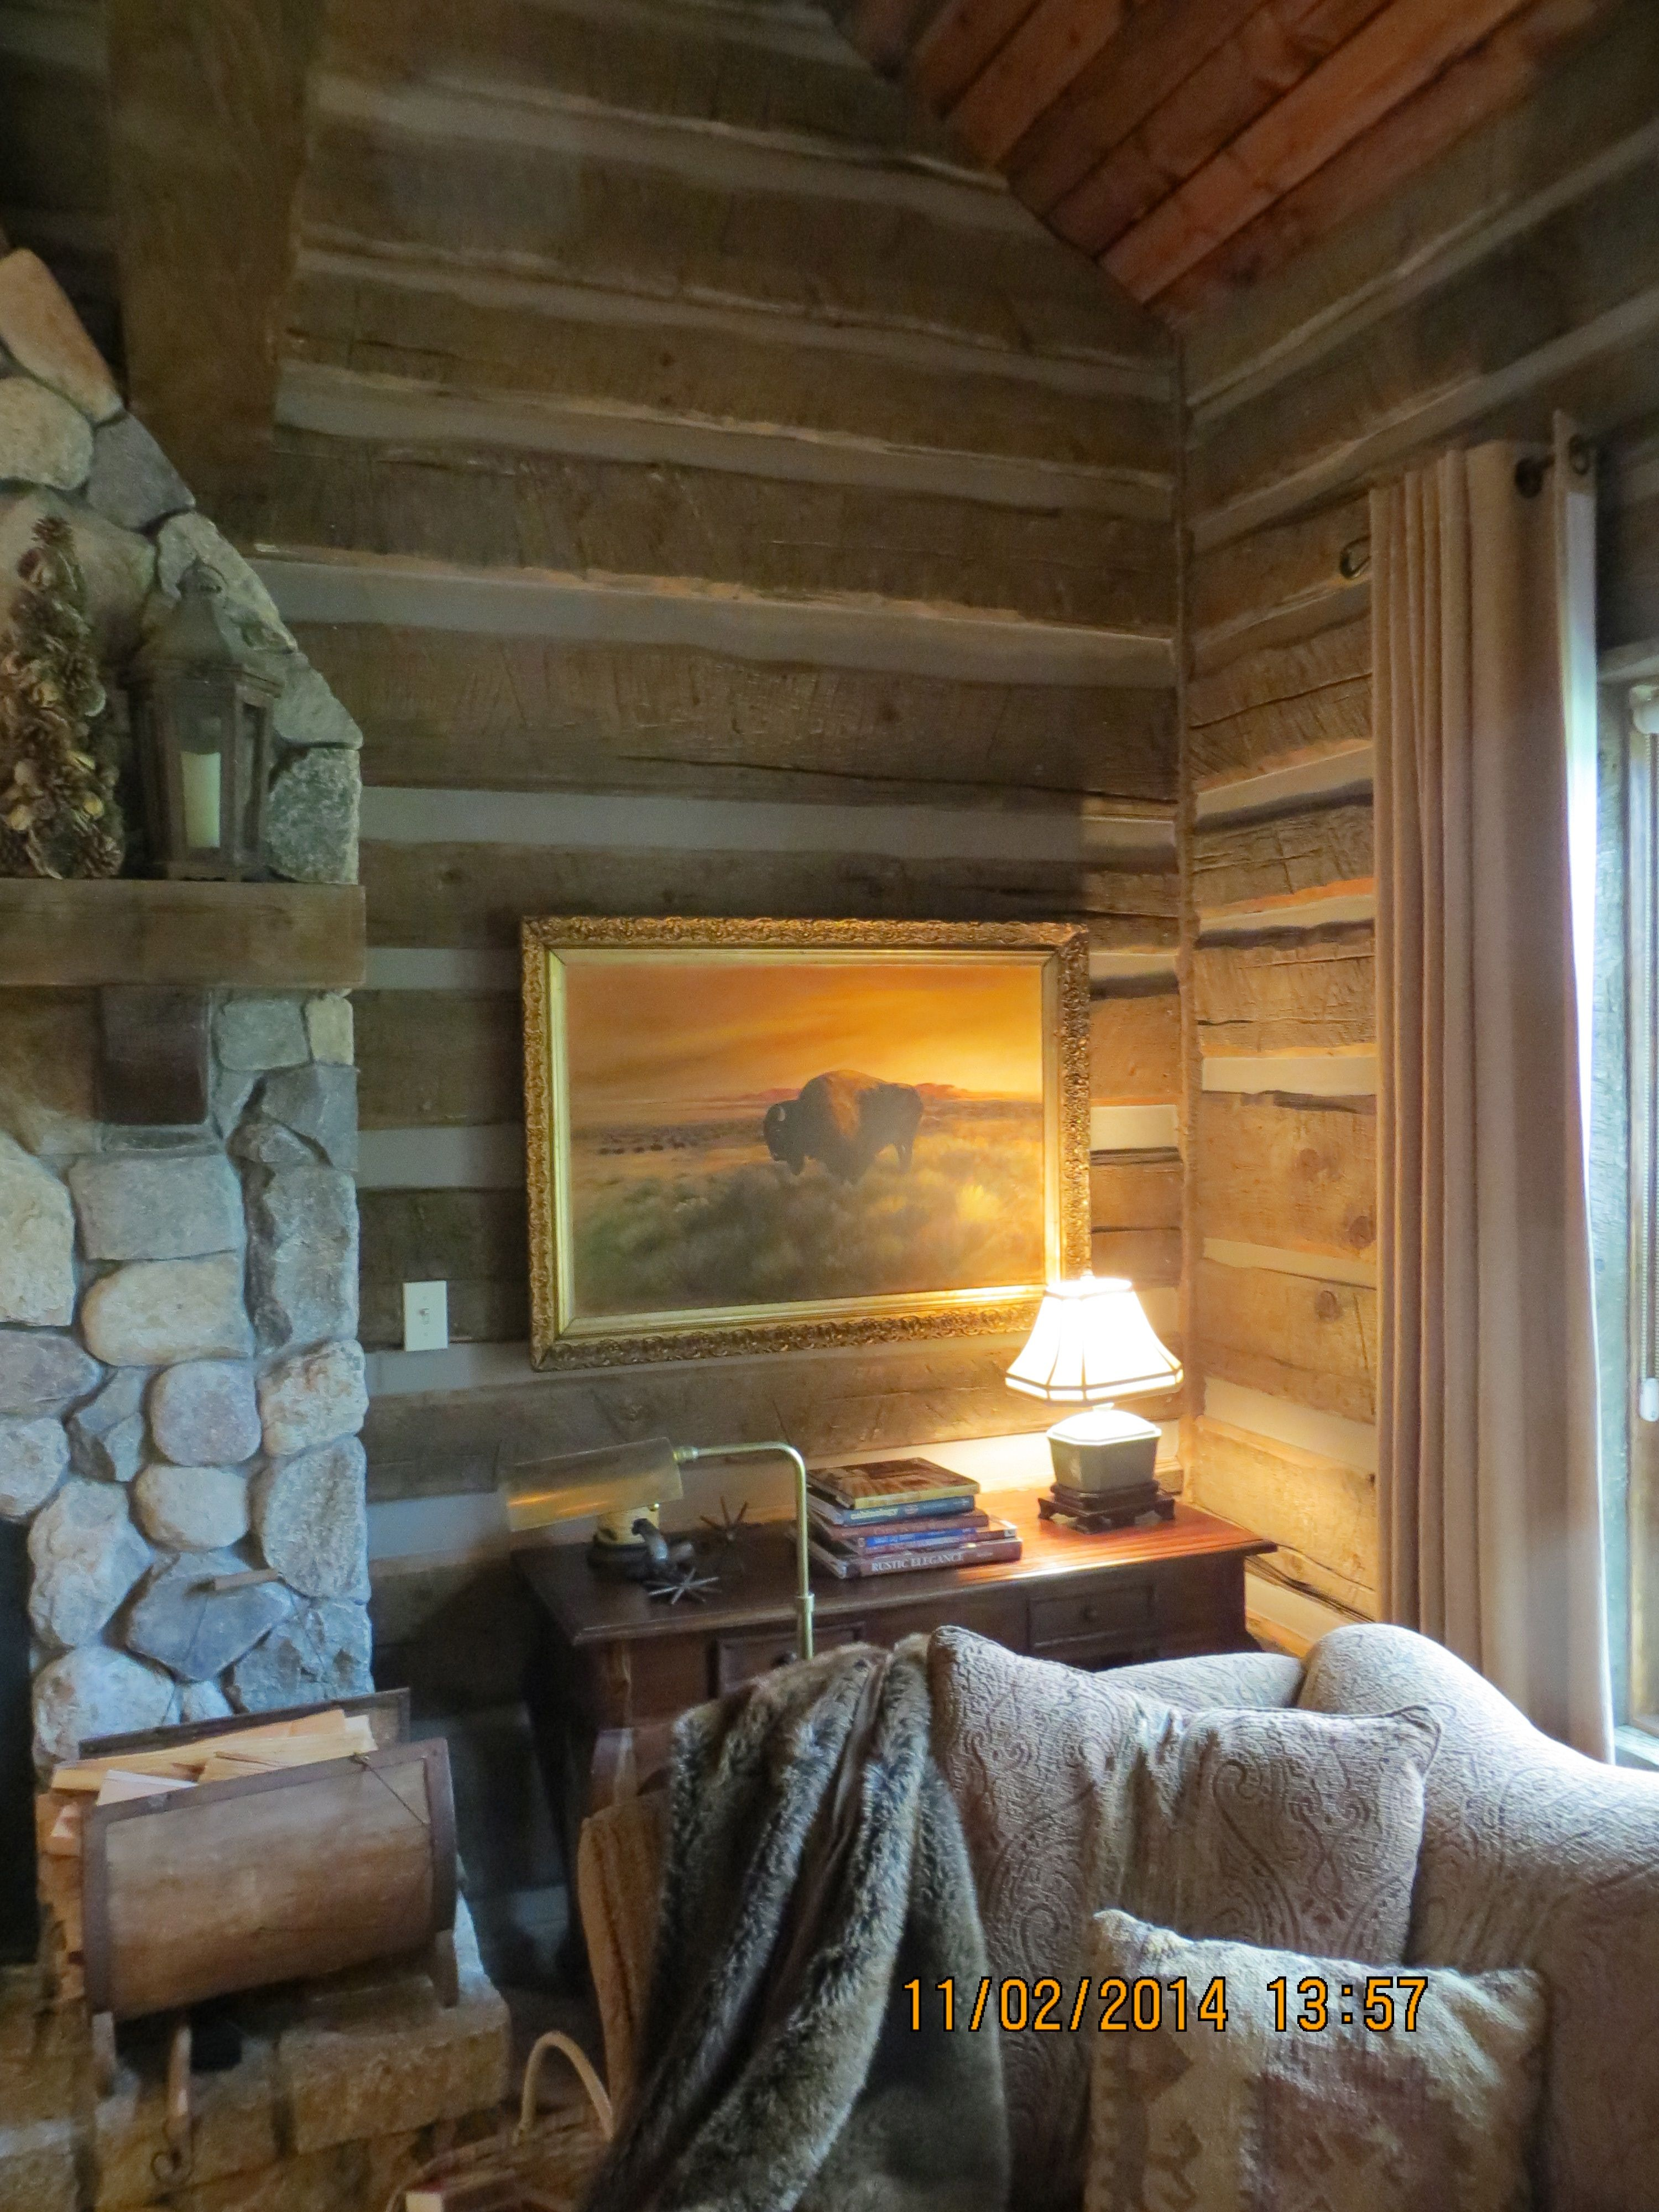 Warmcozy interior with pioneer log siding homes with pioneer warmcozy interior with pioneer log siding publicscrutiny Image collections